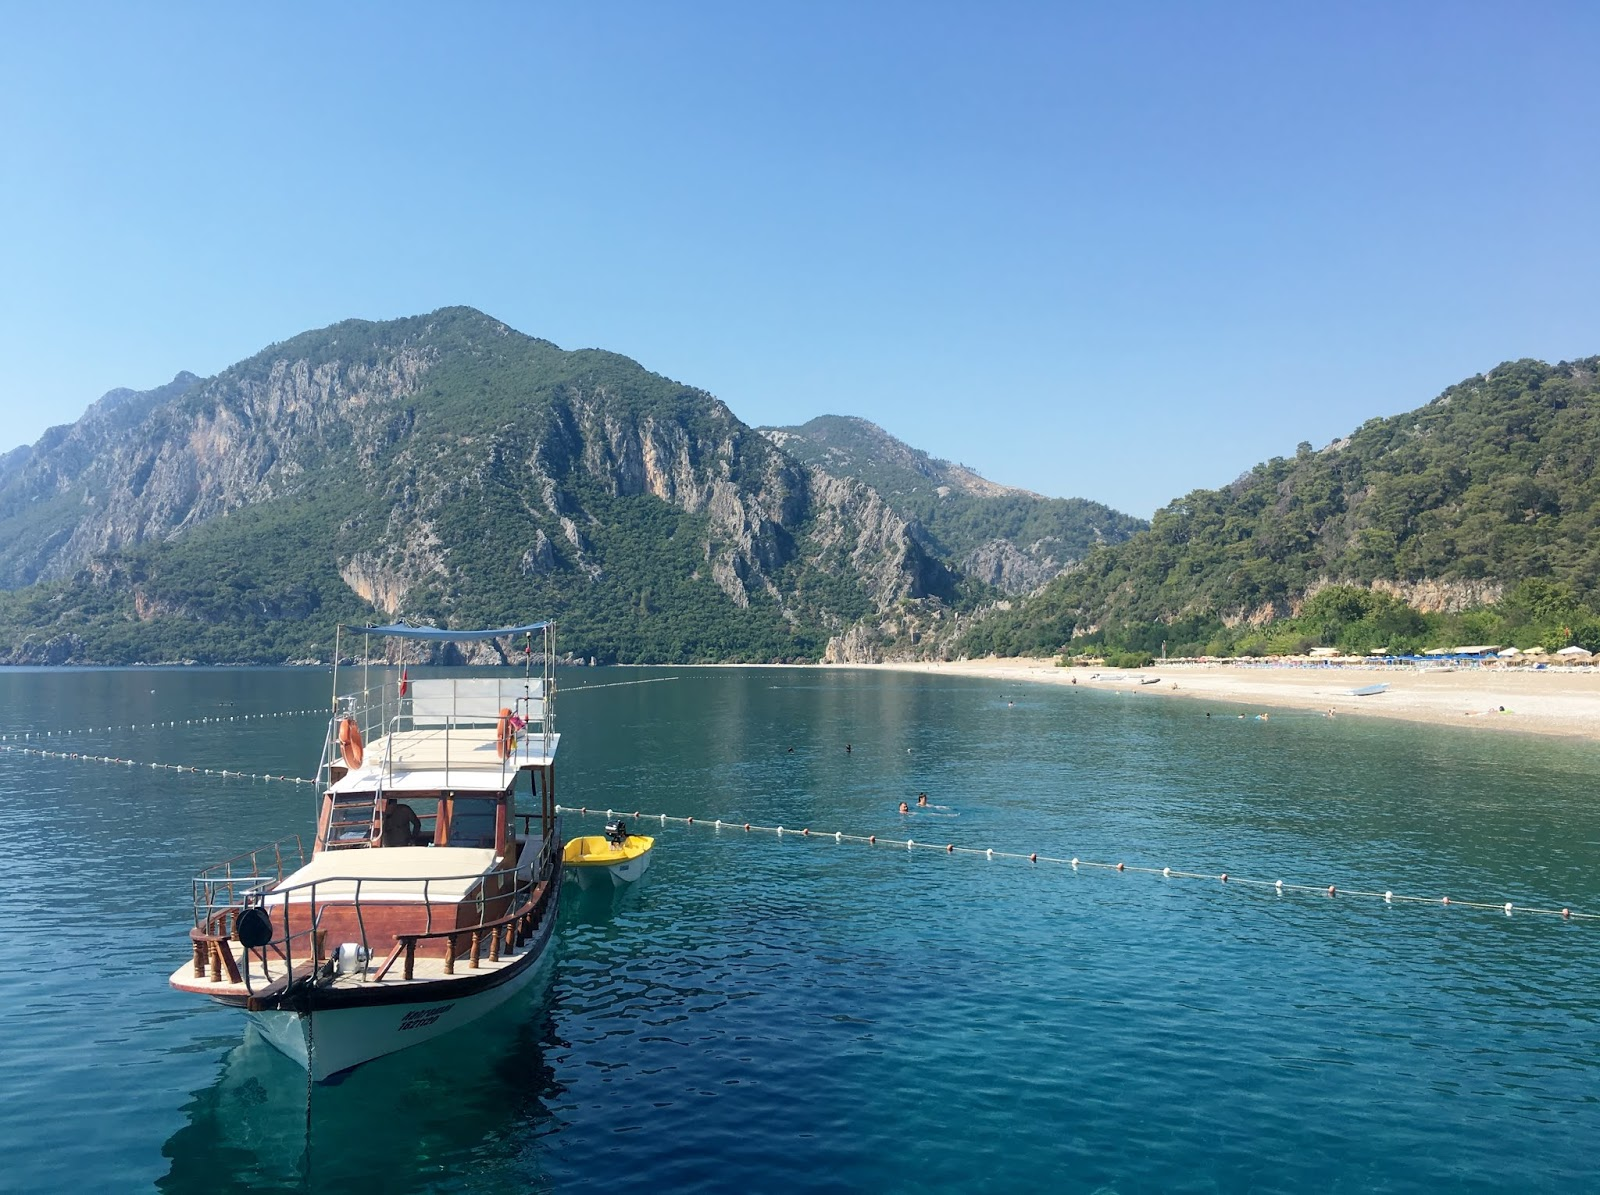 From Cirali,Turkey, to sizzling Hastings